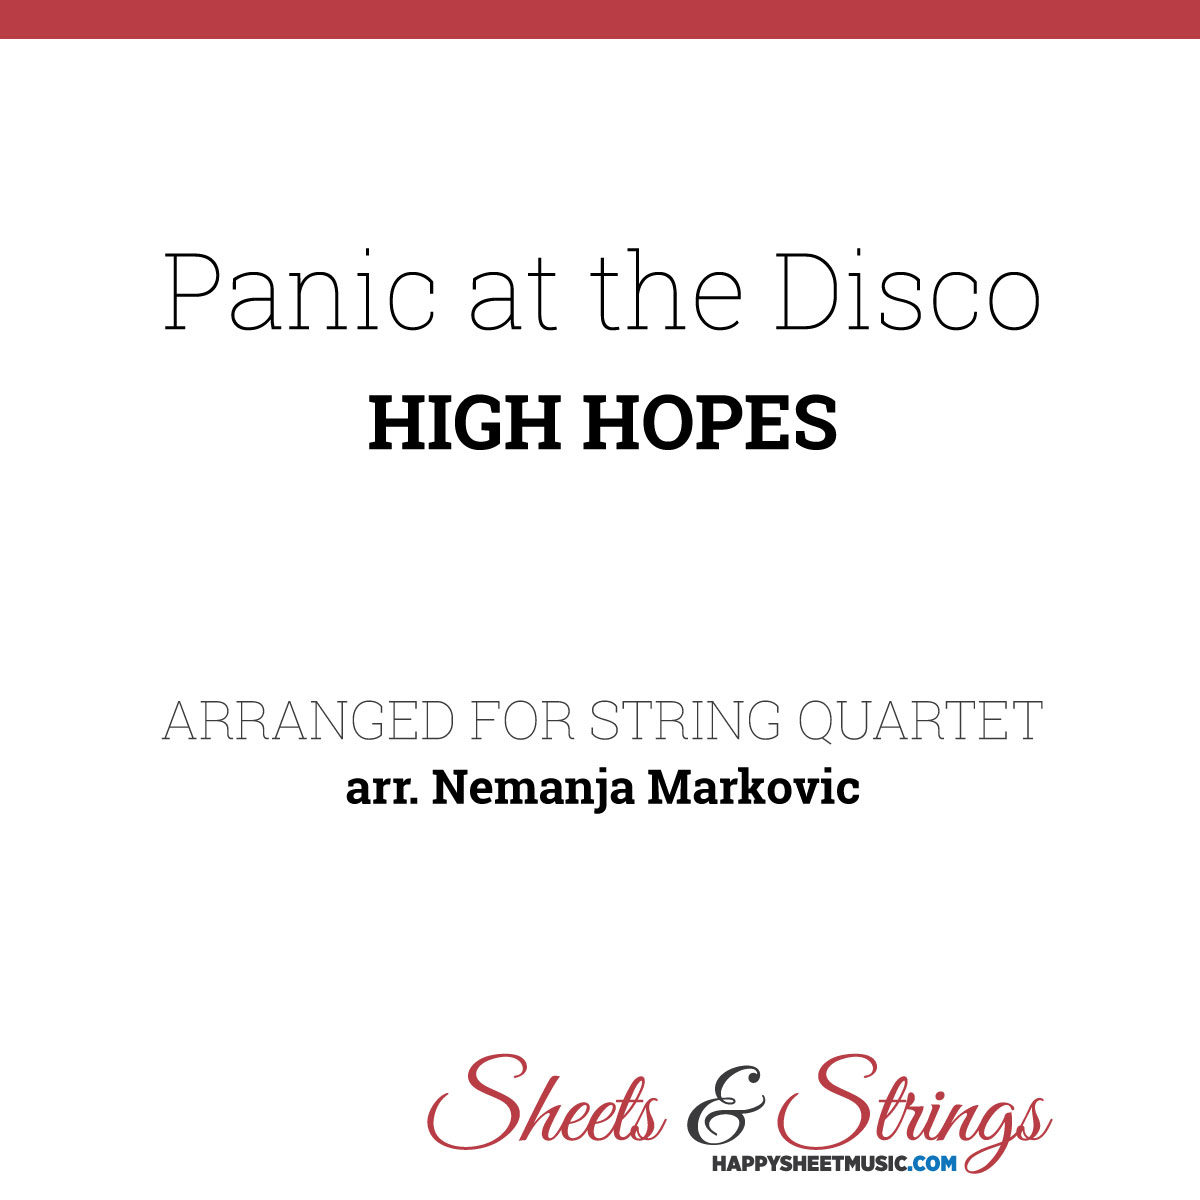 Panic at the Disco - High Hopes - Sheet Music for String Quartet - Music Arrangement for String Quartet